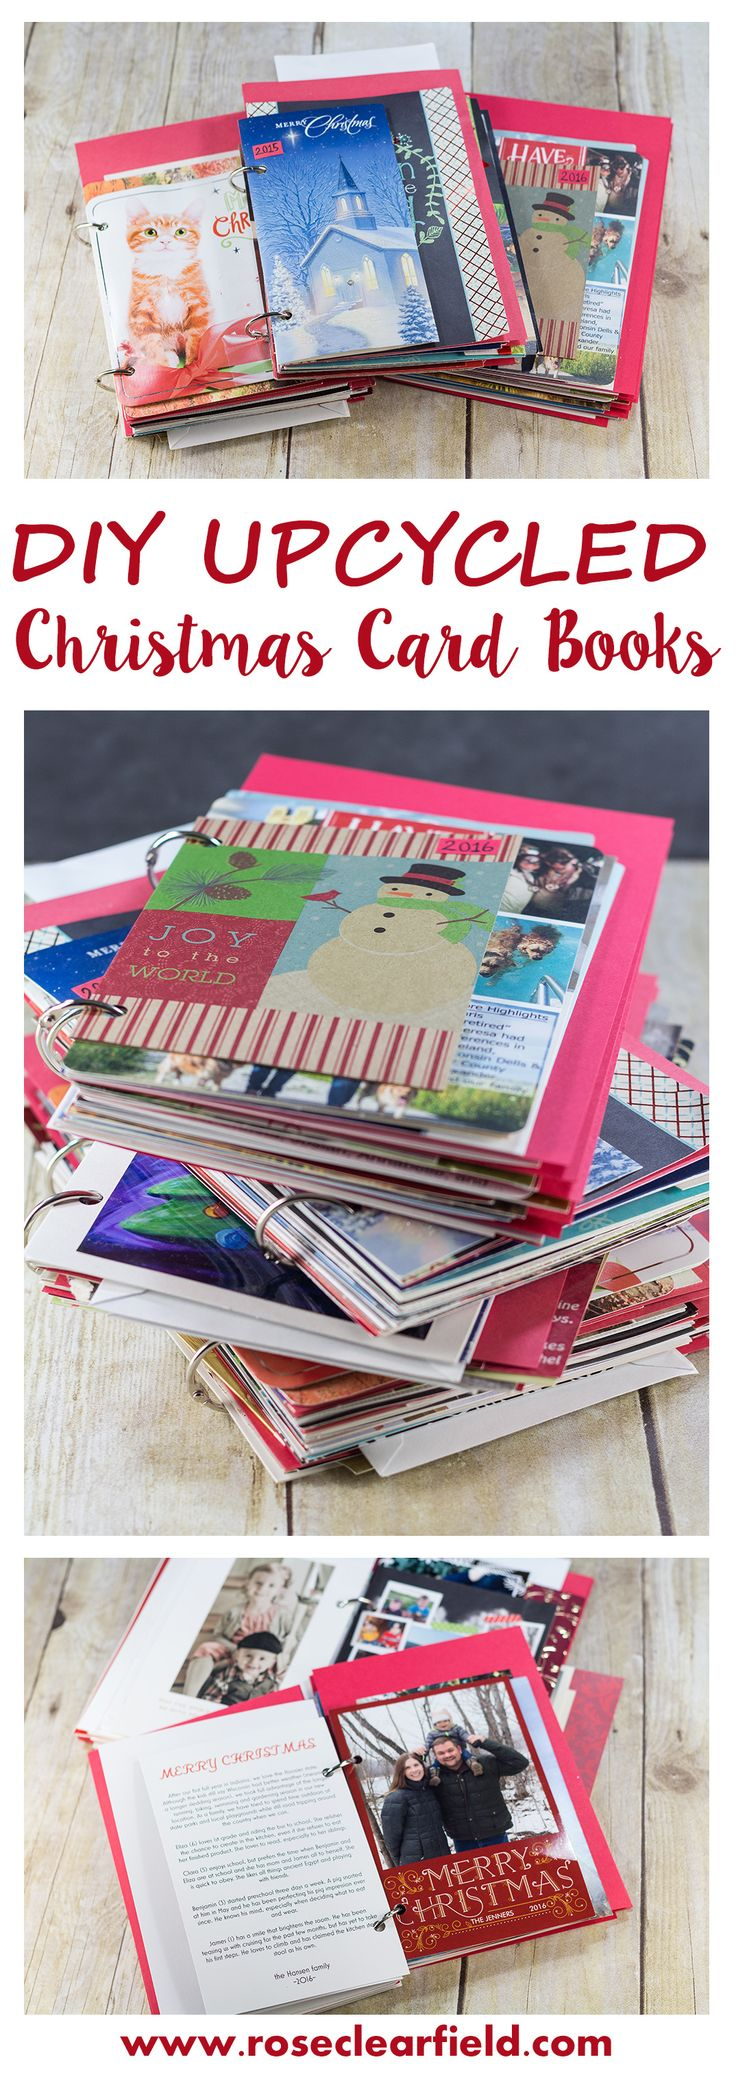 Upcycled Christmas Card Books Tutorial | http://www.roseclearfield.com